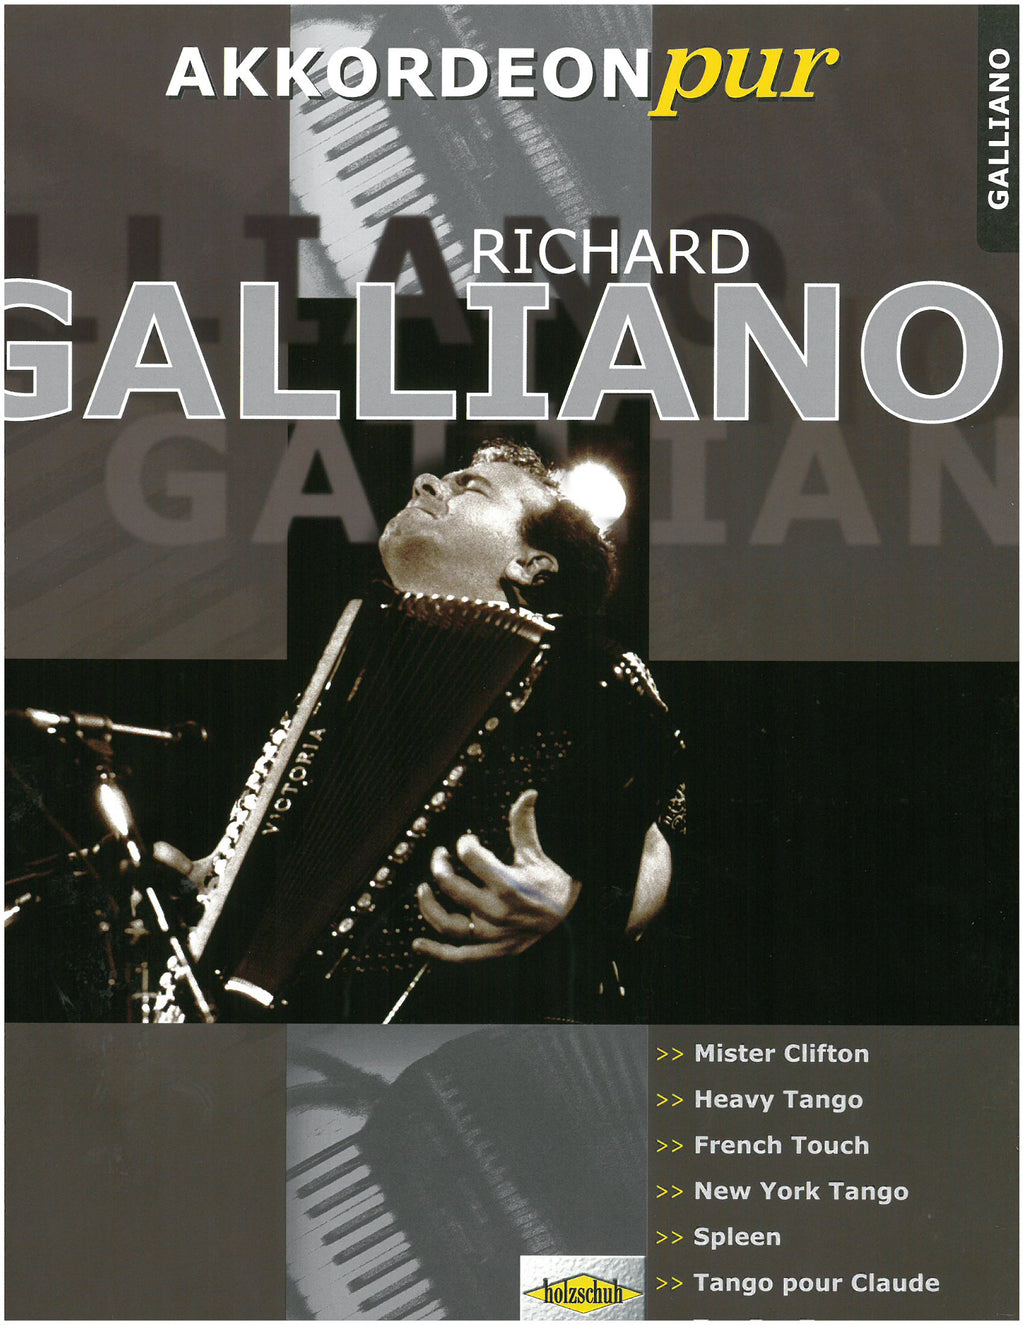 Richard Galliano Accordion Cover